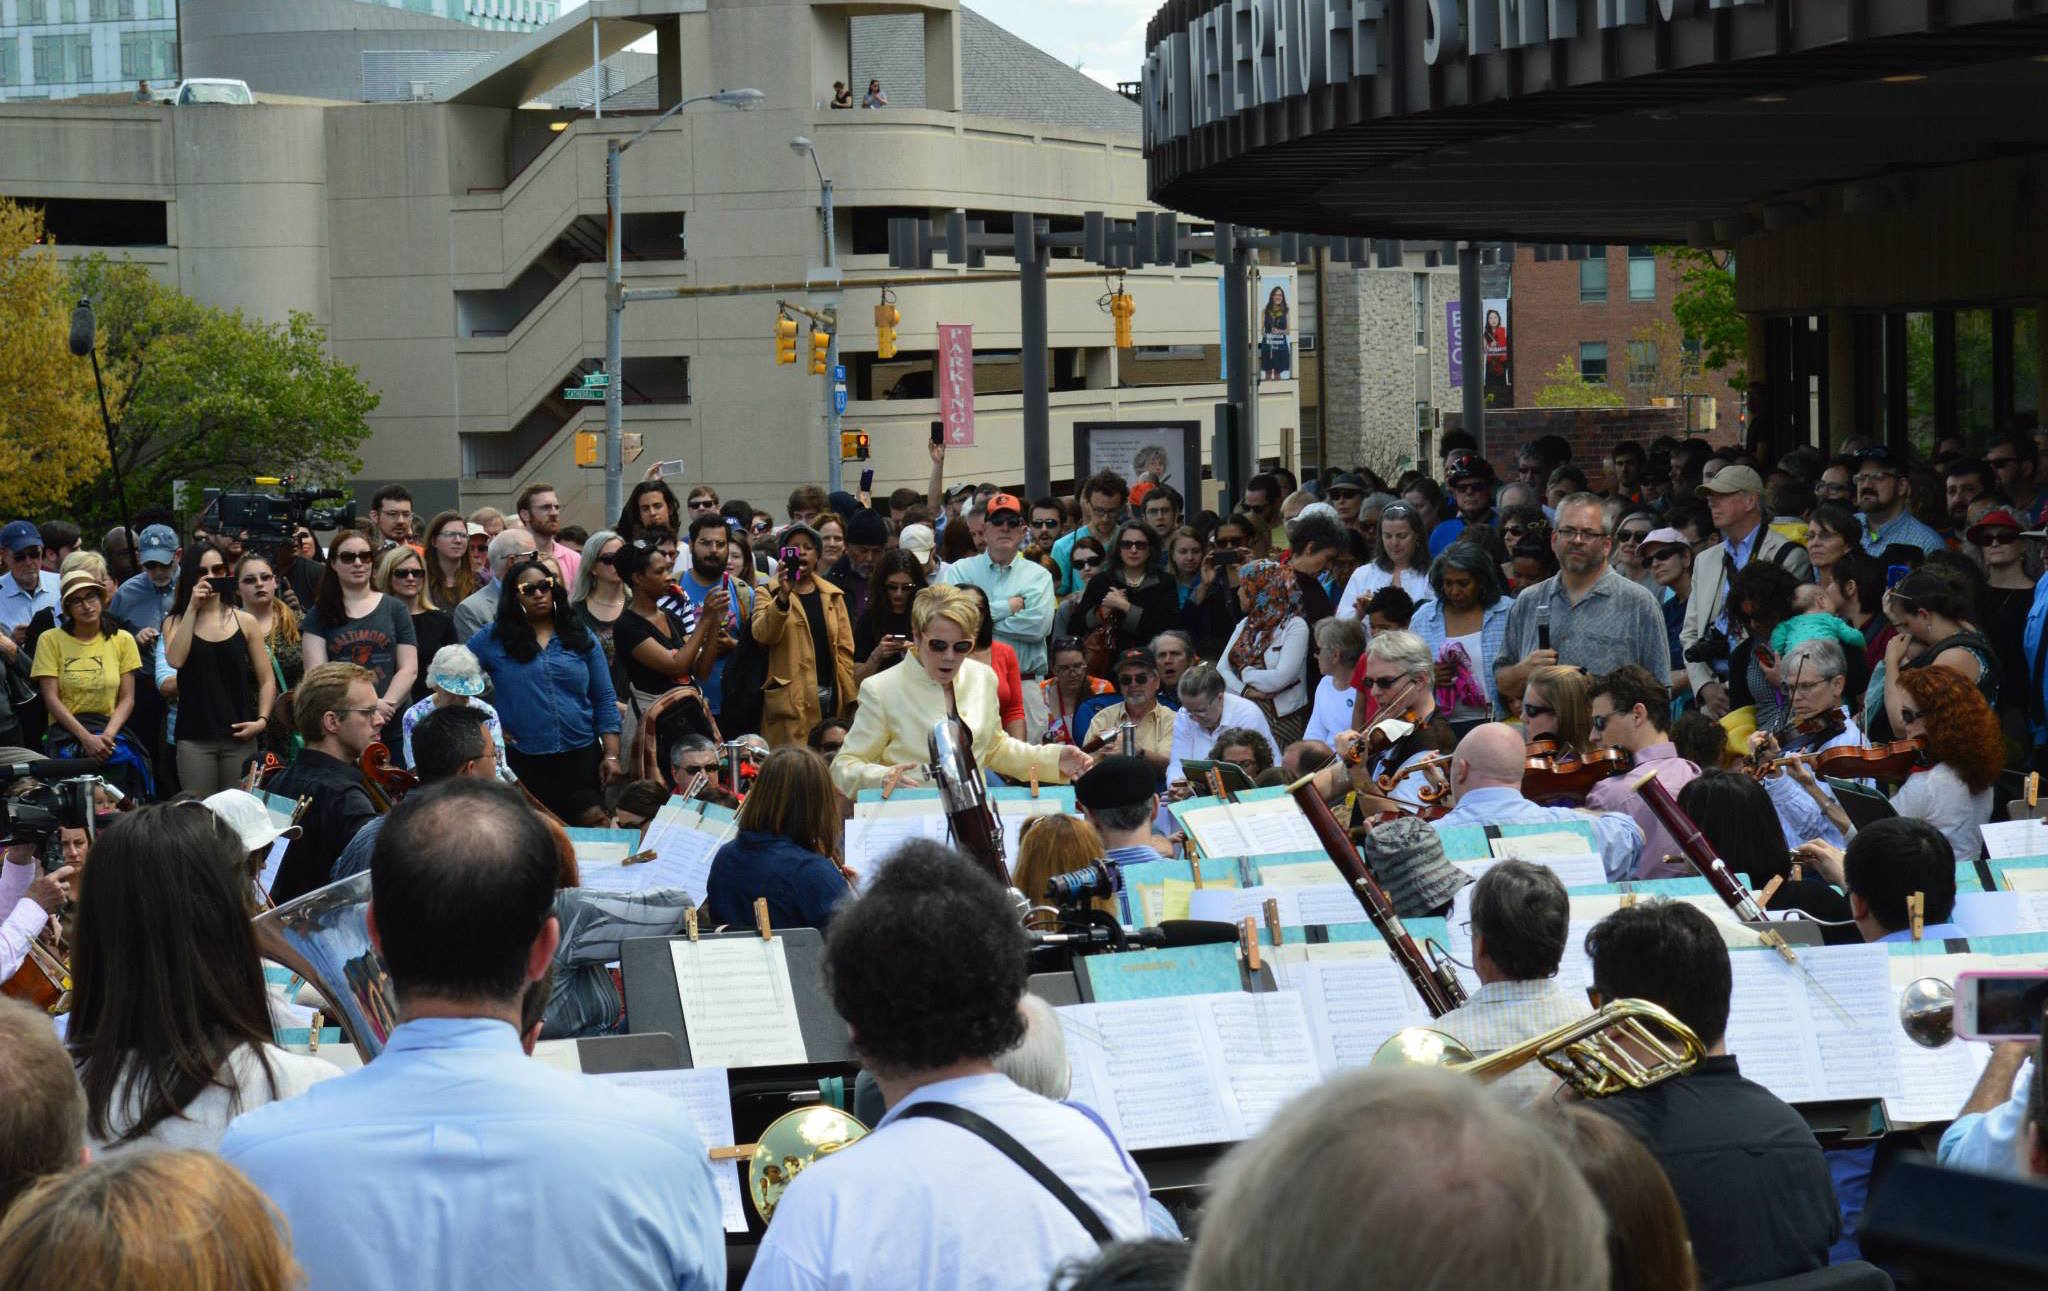 Baltimore Symphony plays a concert for peace on April 29, 2015